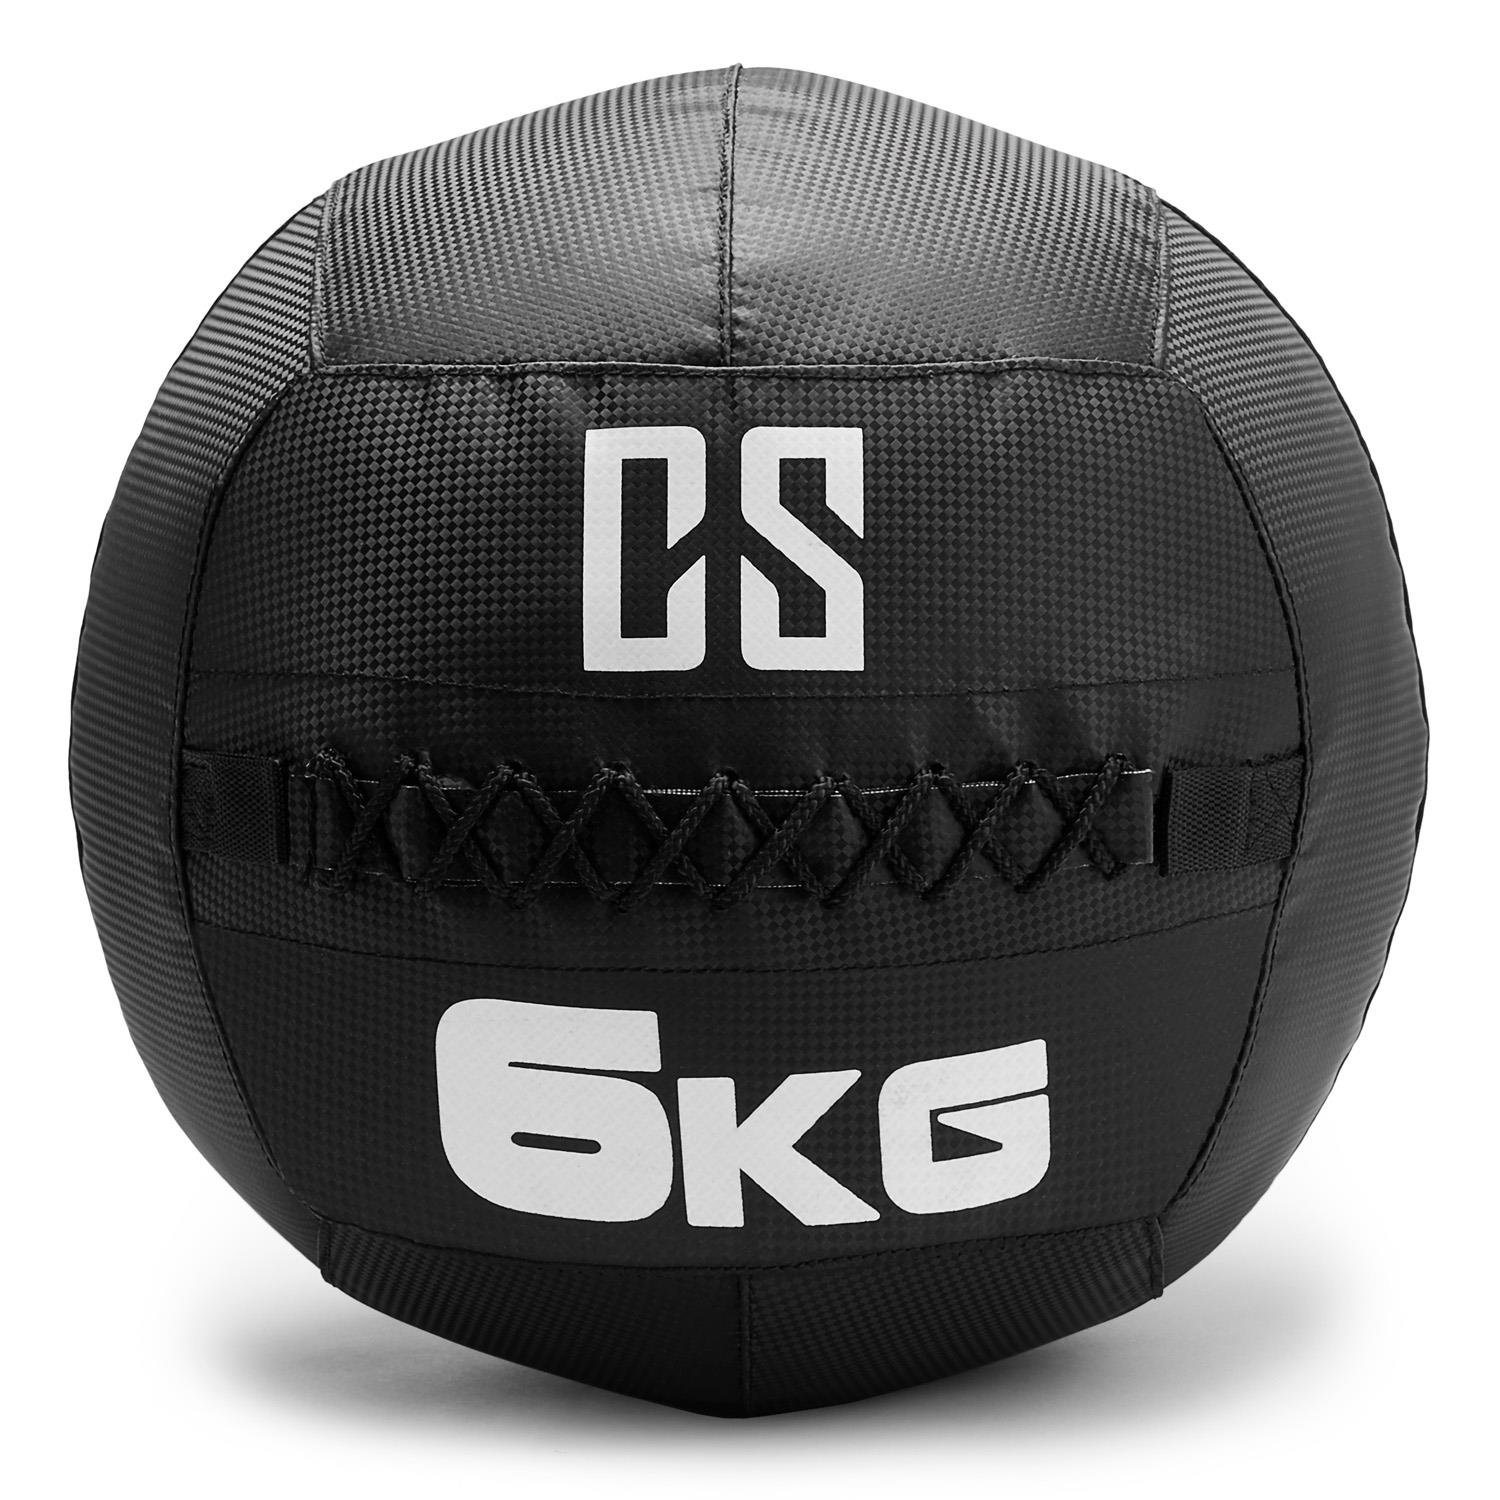 CAPITAL SPORTS Bravor \ Medizinball / Wall Ball